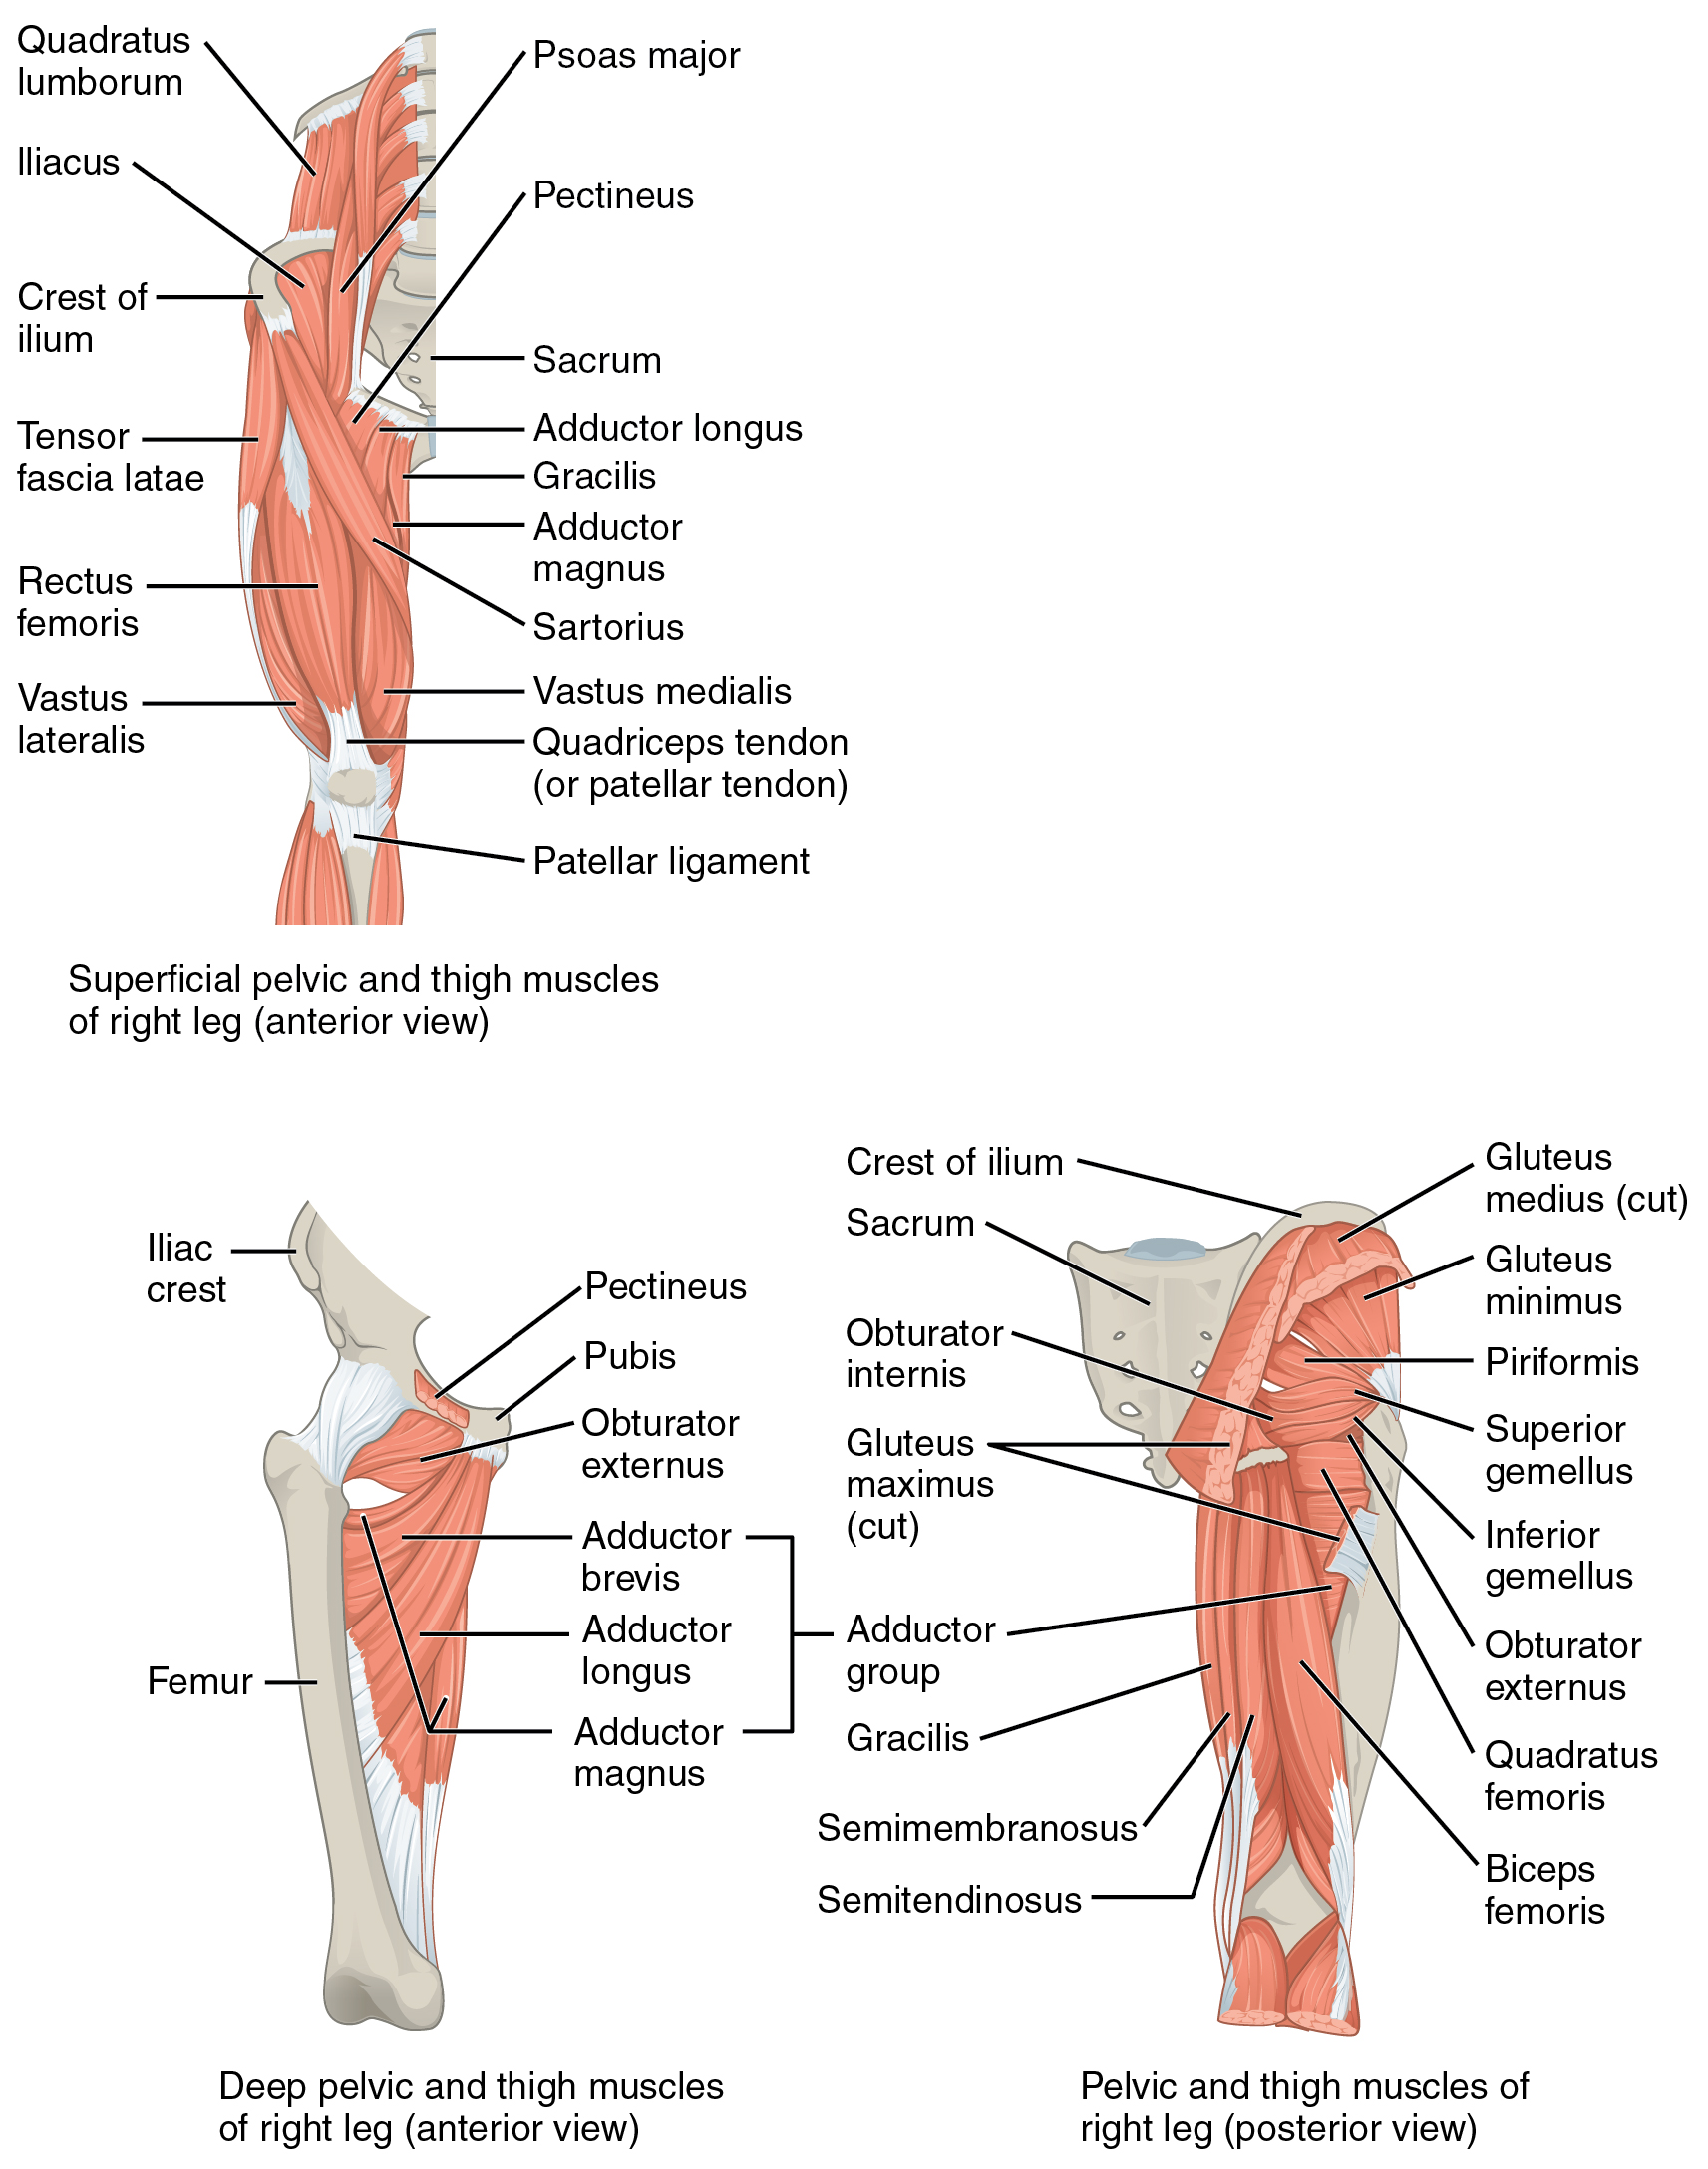 116 Appendicular Muscles Of The Pelvic Girdle And Lower Limbs